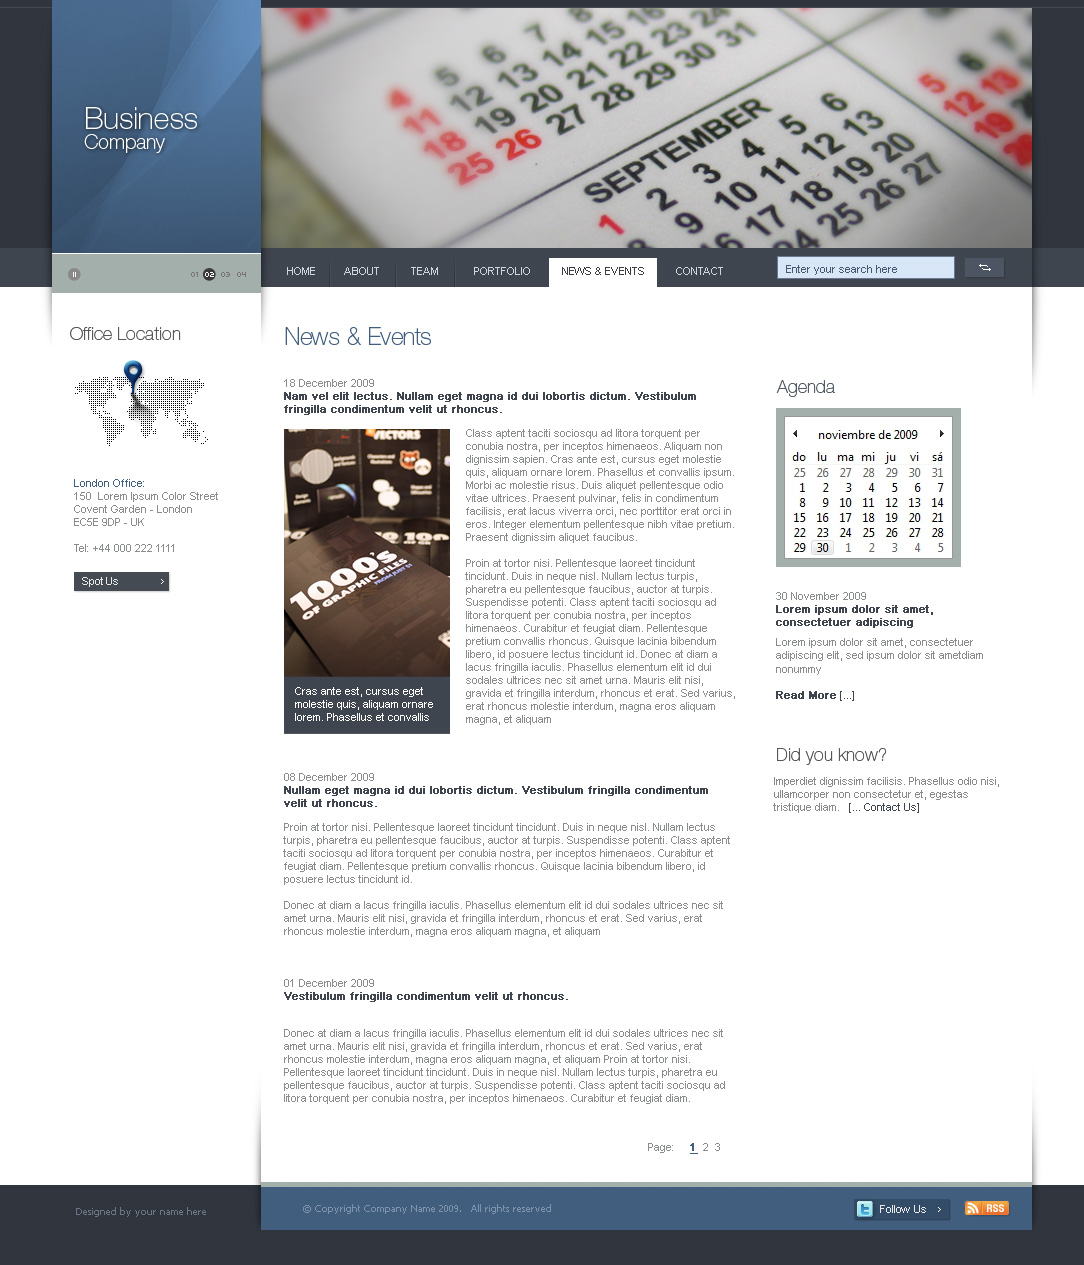 Html Css Flash Psd Business Template Version By Juantomasoli